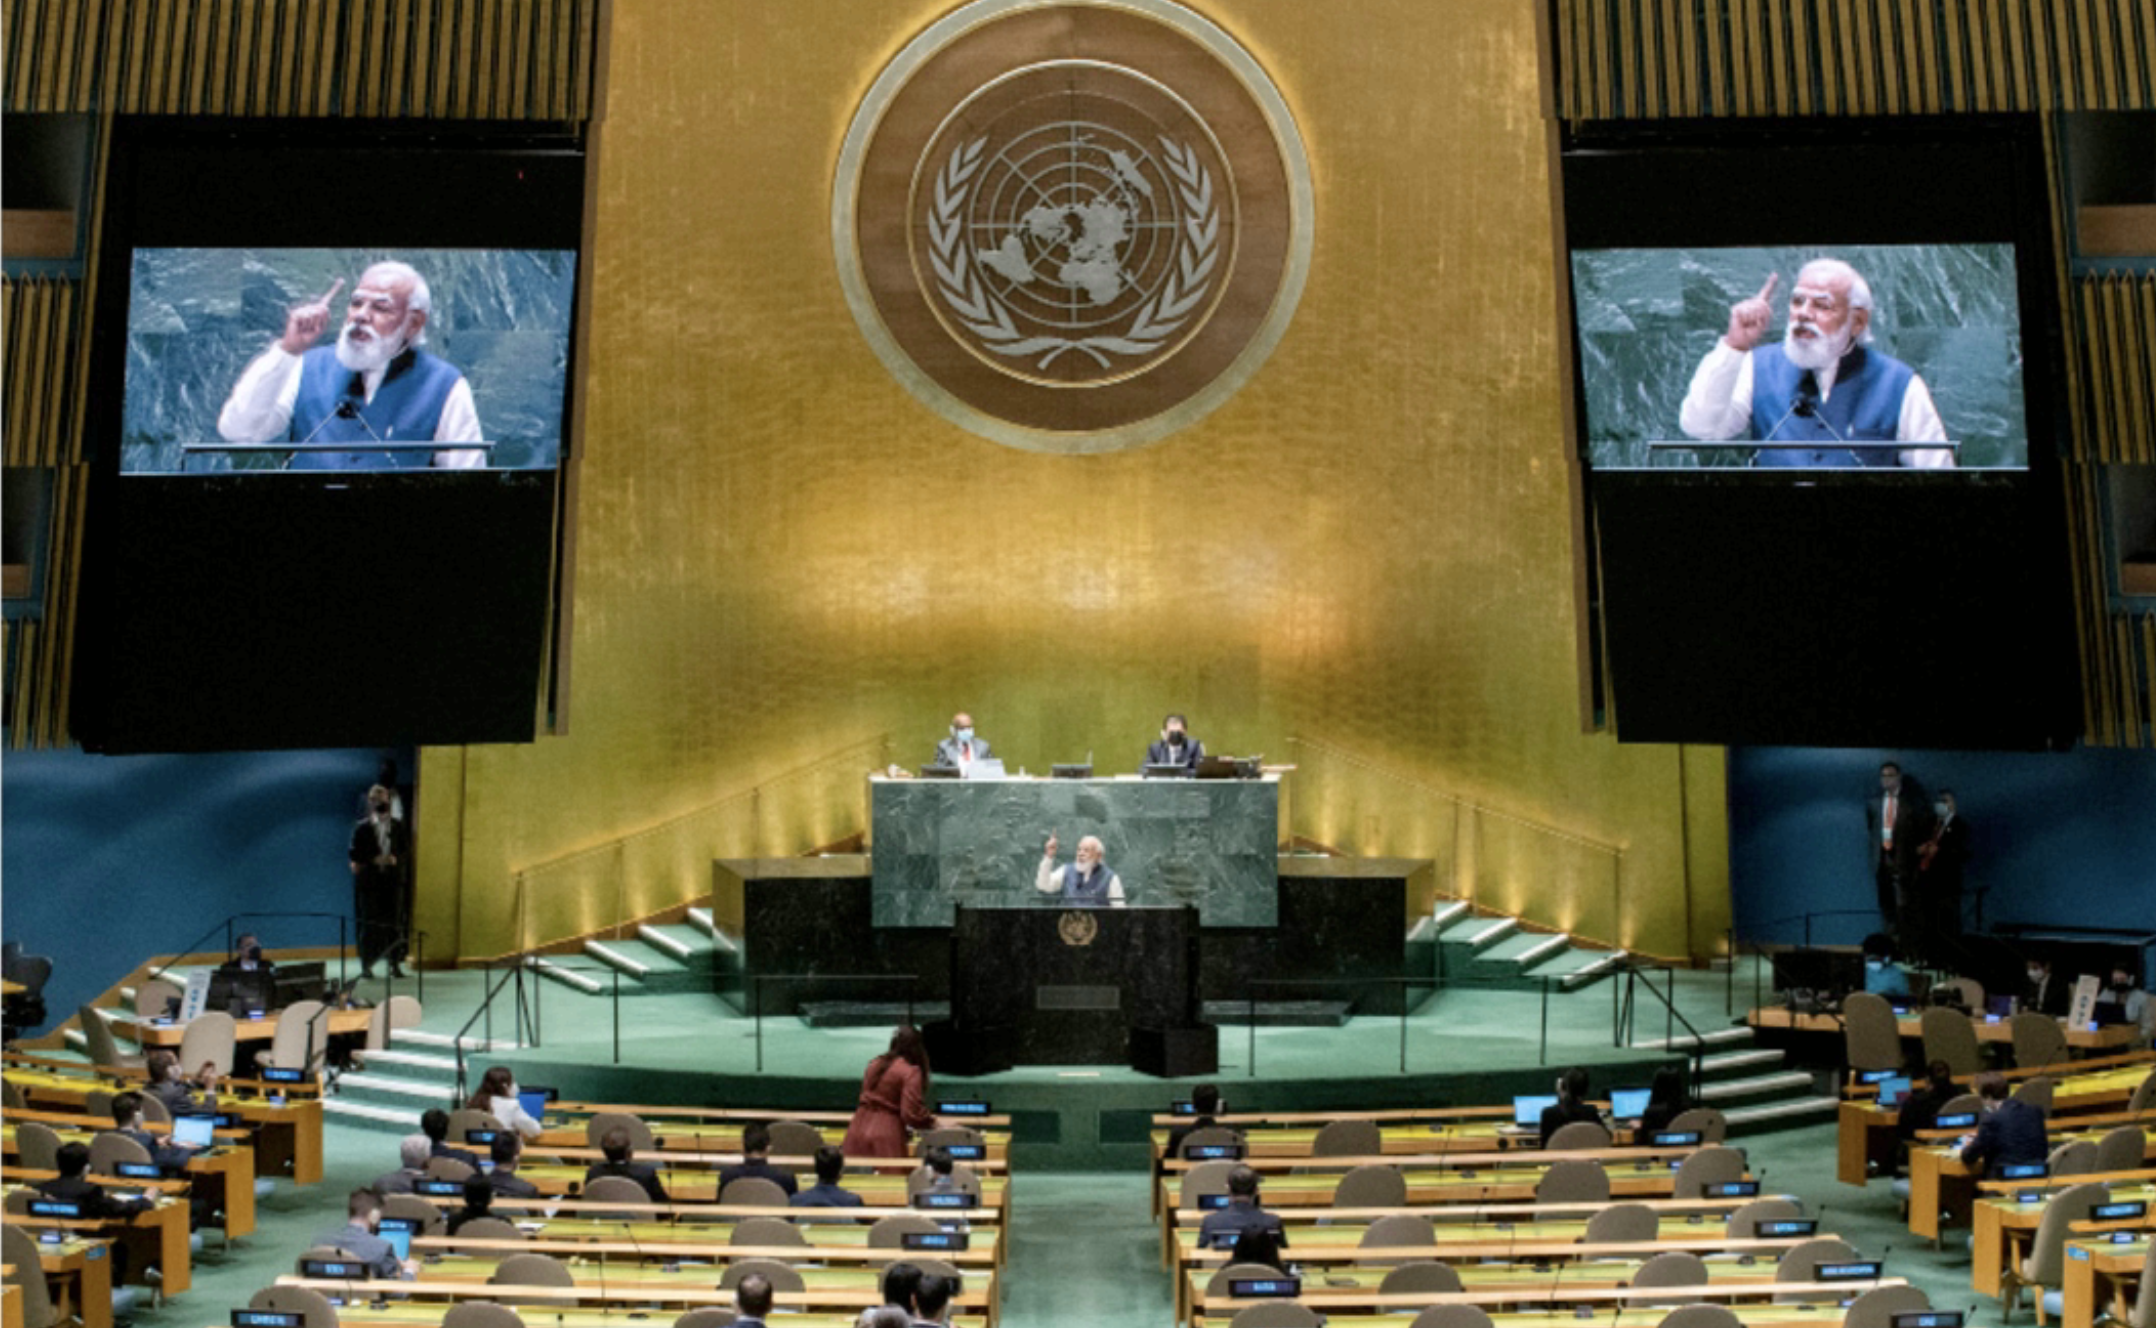 Leaders at UN face global concern over regional conflicts